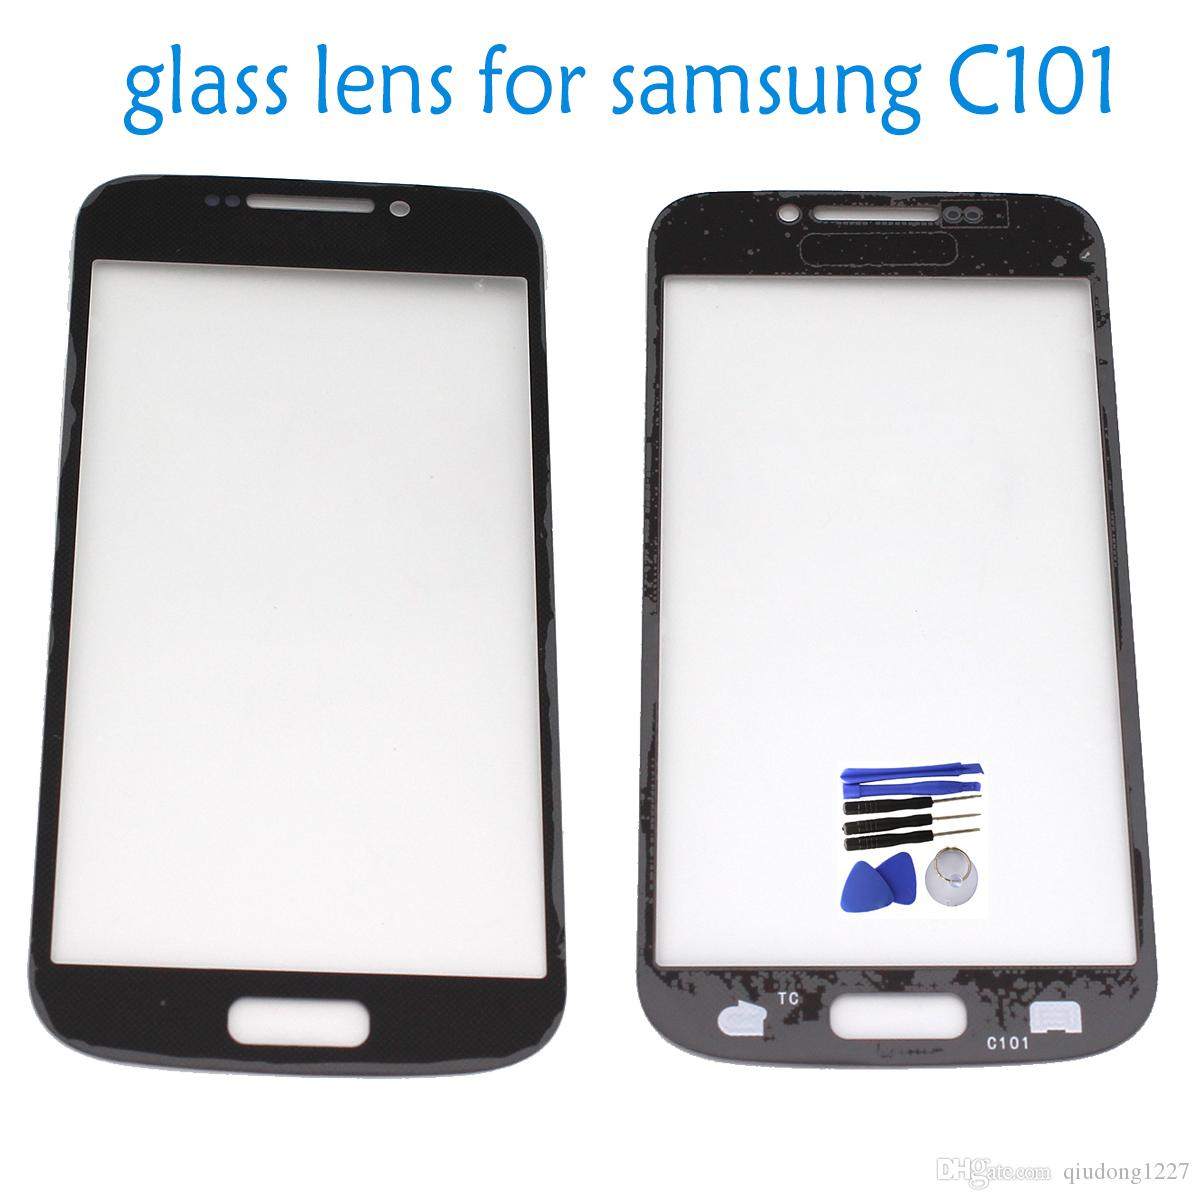 2018 Free Sample Touch Screen Lens Glass Replacement Part Tool Kits Samsung Galaxy S4 Zoom Black For C101 White From Qiudong1227 289